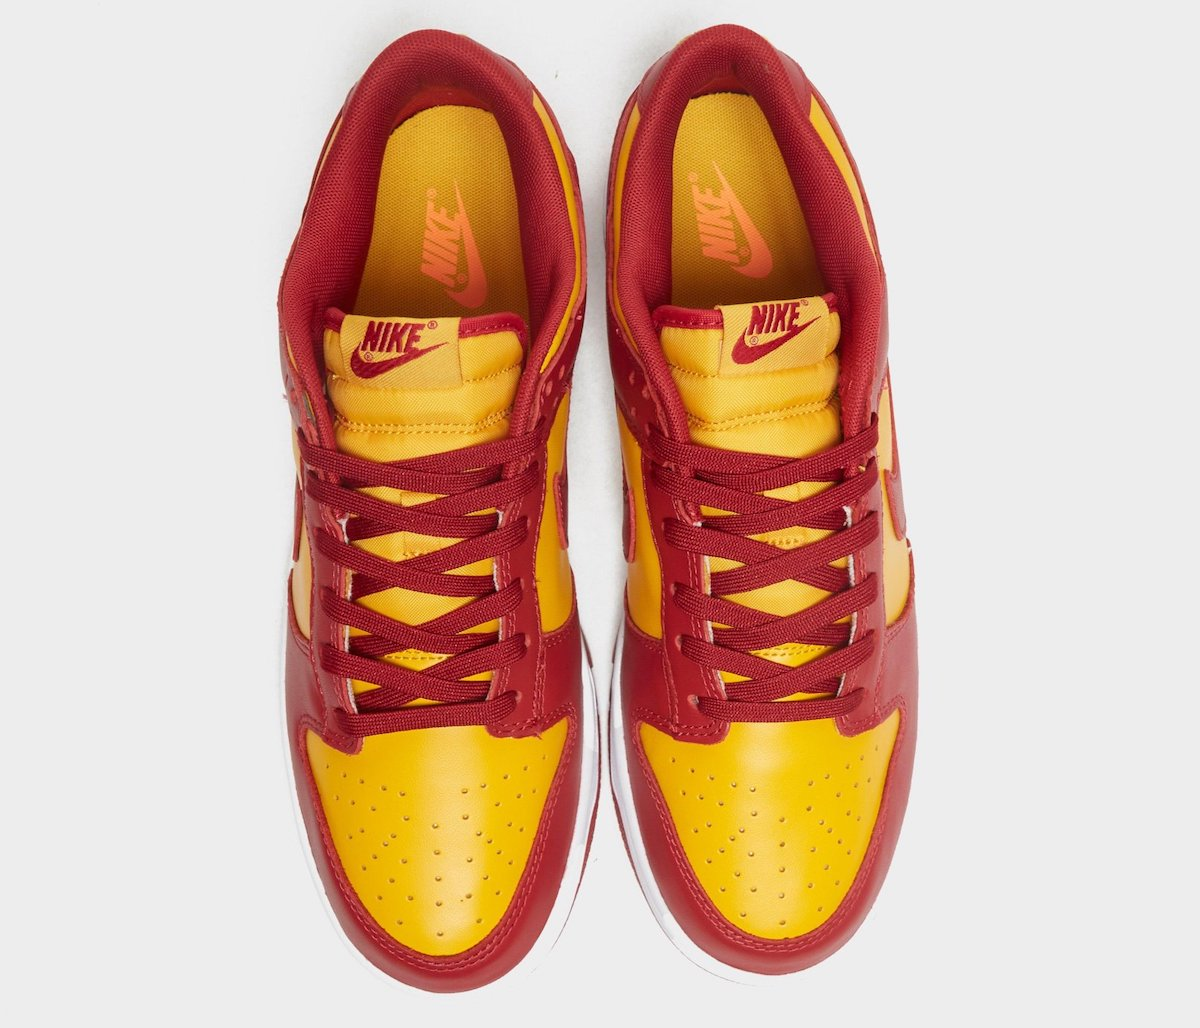 Nike-Dunk-Low-Midas-Gold-Tough-Red-White-DD1391-701-Release-Date-2